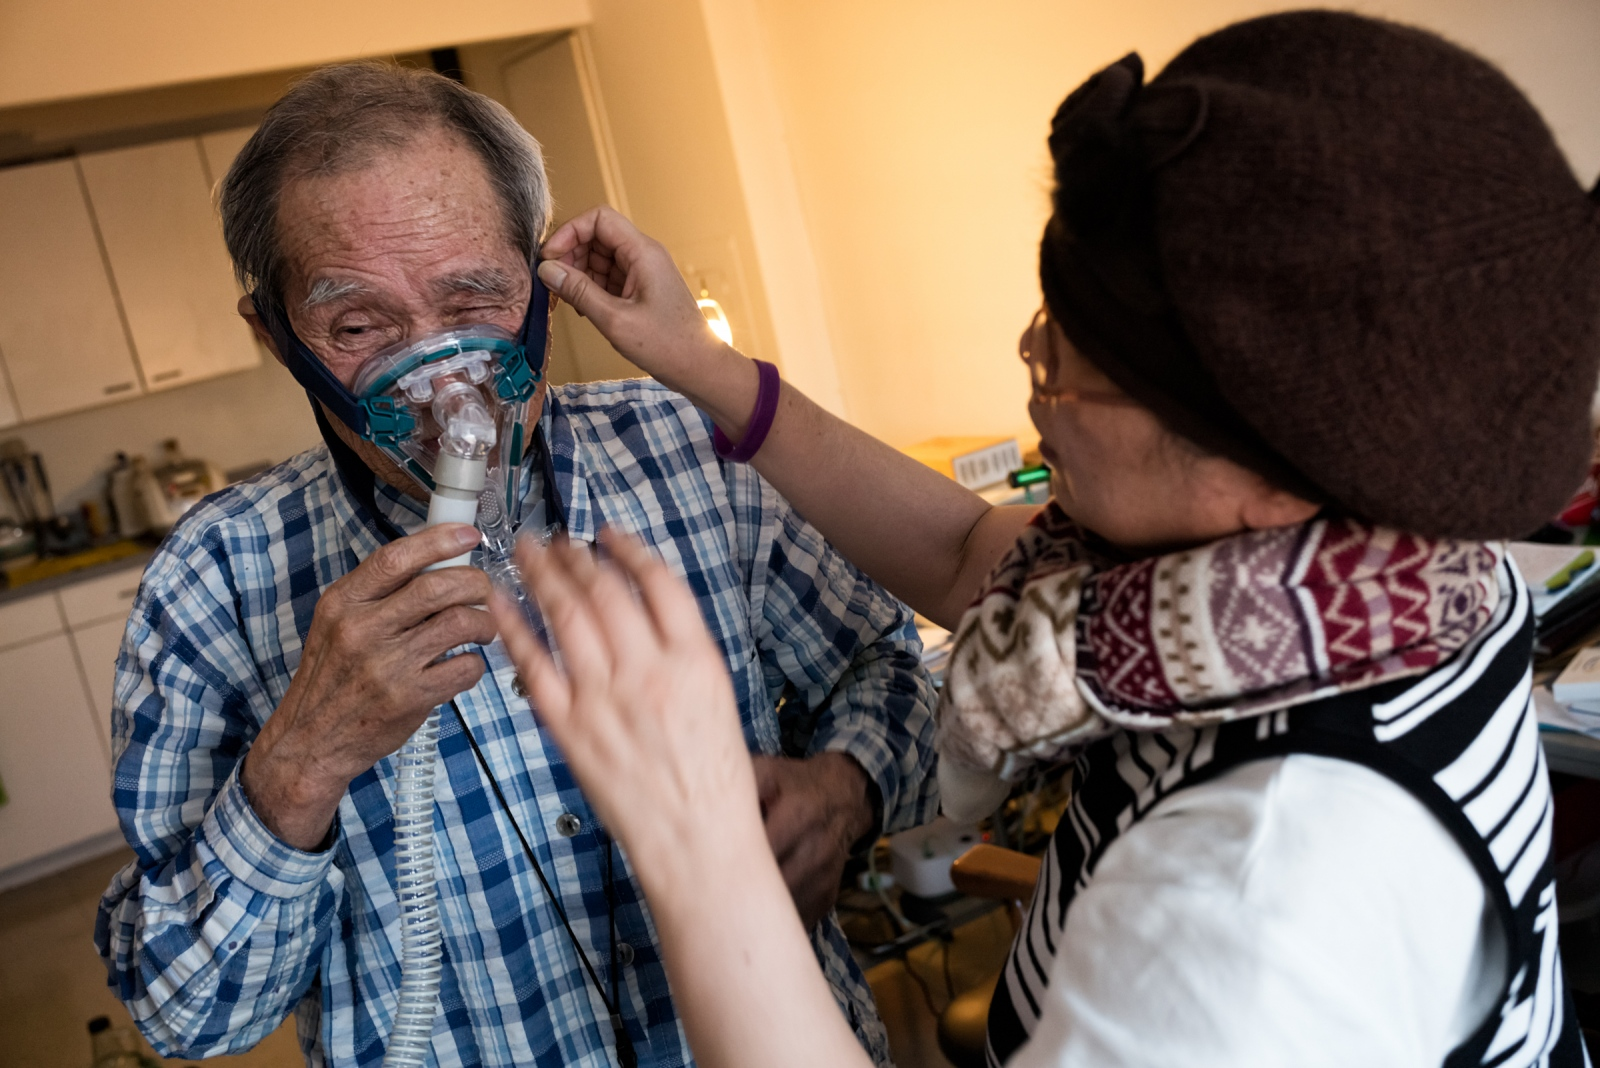 Art and Documentary Photography - Loading Hillman_Nursing_Immigrant Caregive_LoRes_05.jpg